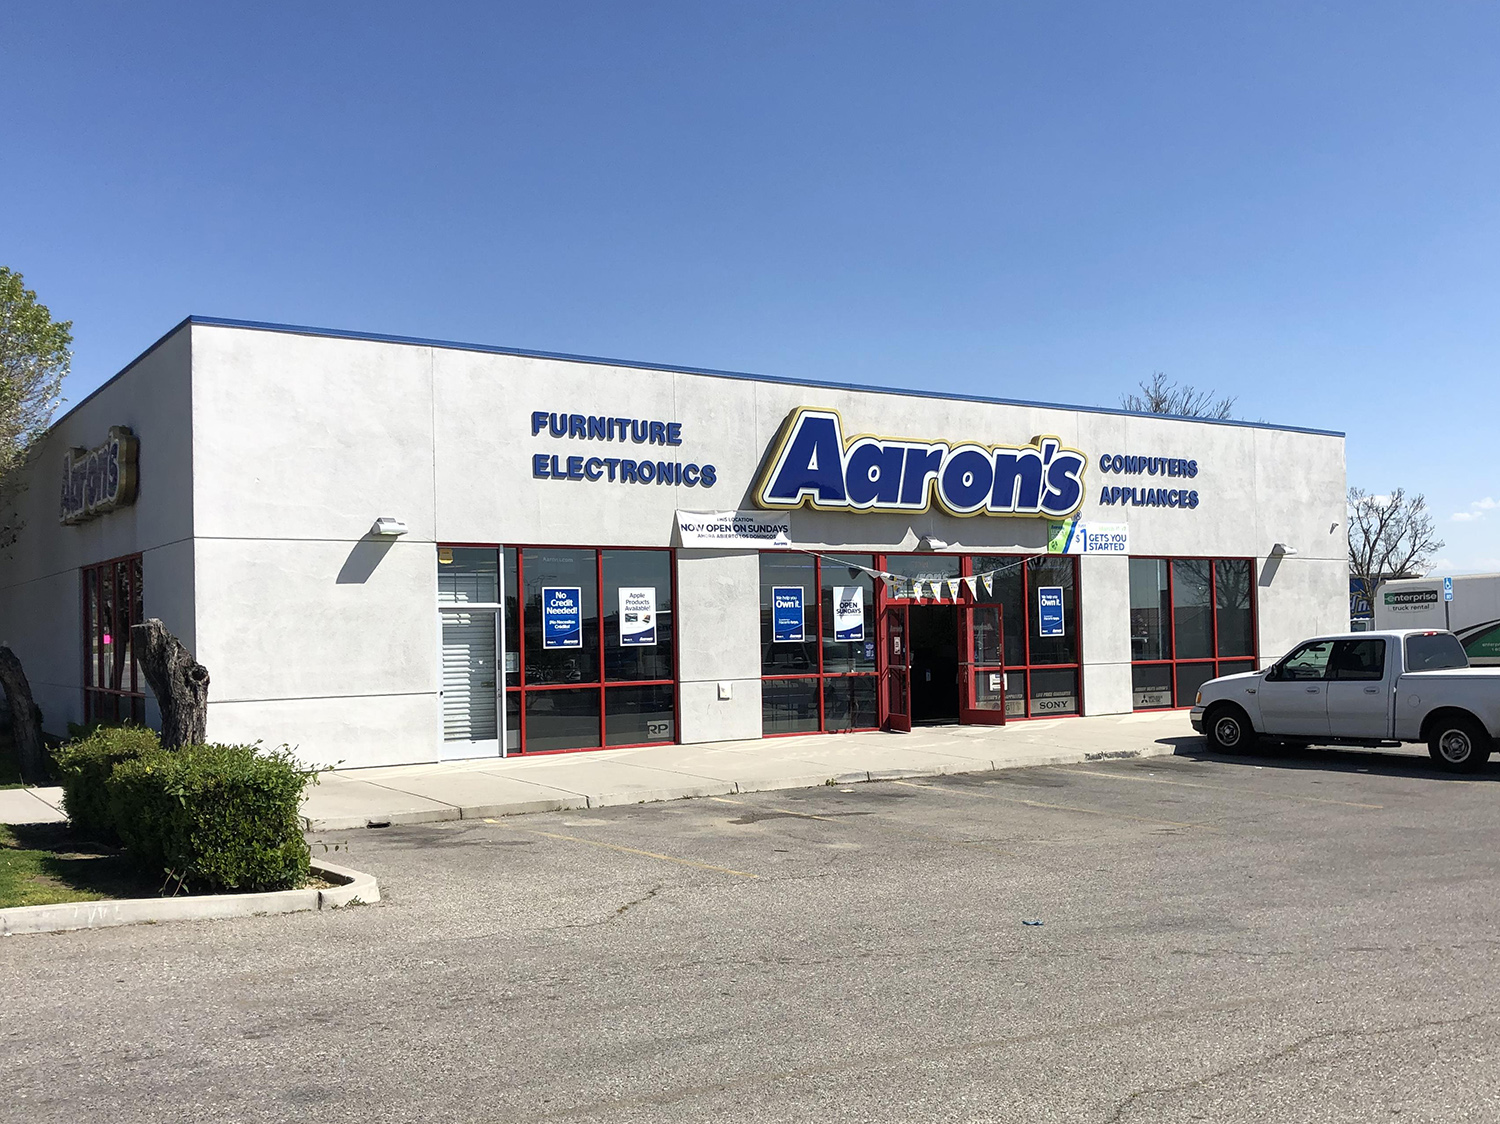 Wood Investments Companies Acquires Value-Add, Single-Tenant Retail Property in Bakersfield, Calif.